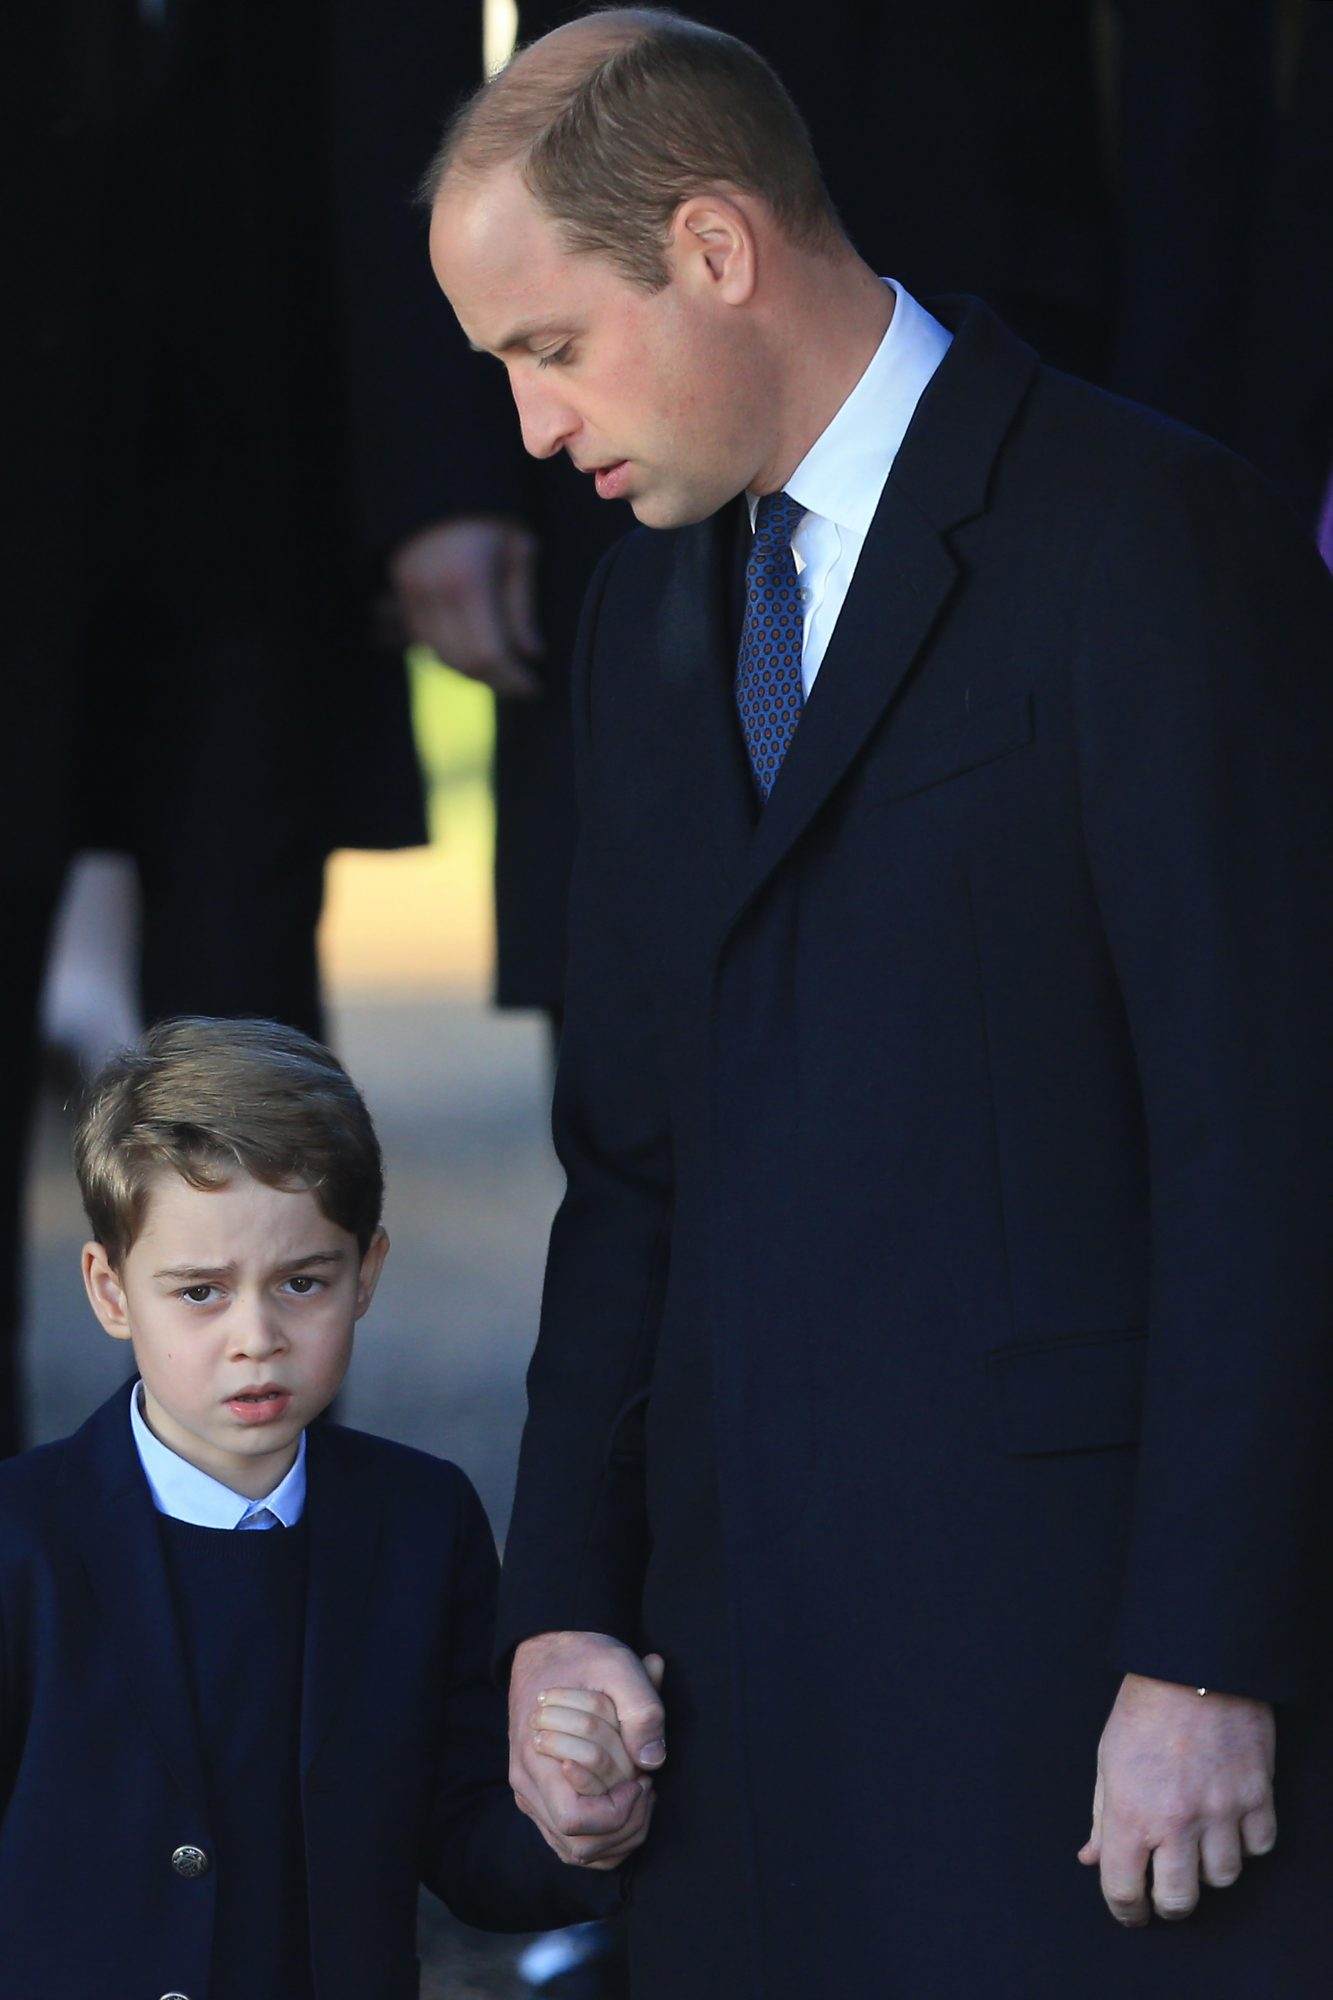 Prince George and Prince William The Royal Family Attend Church On Christmas Day